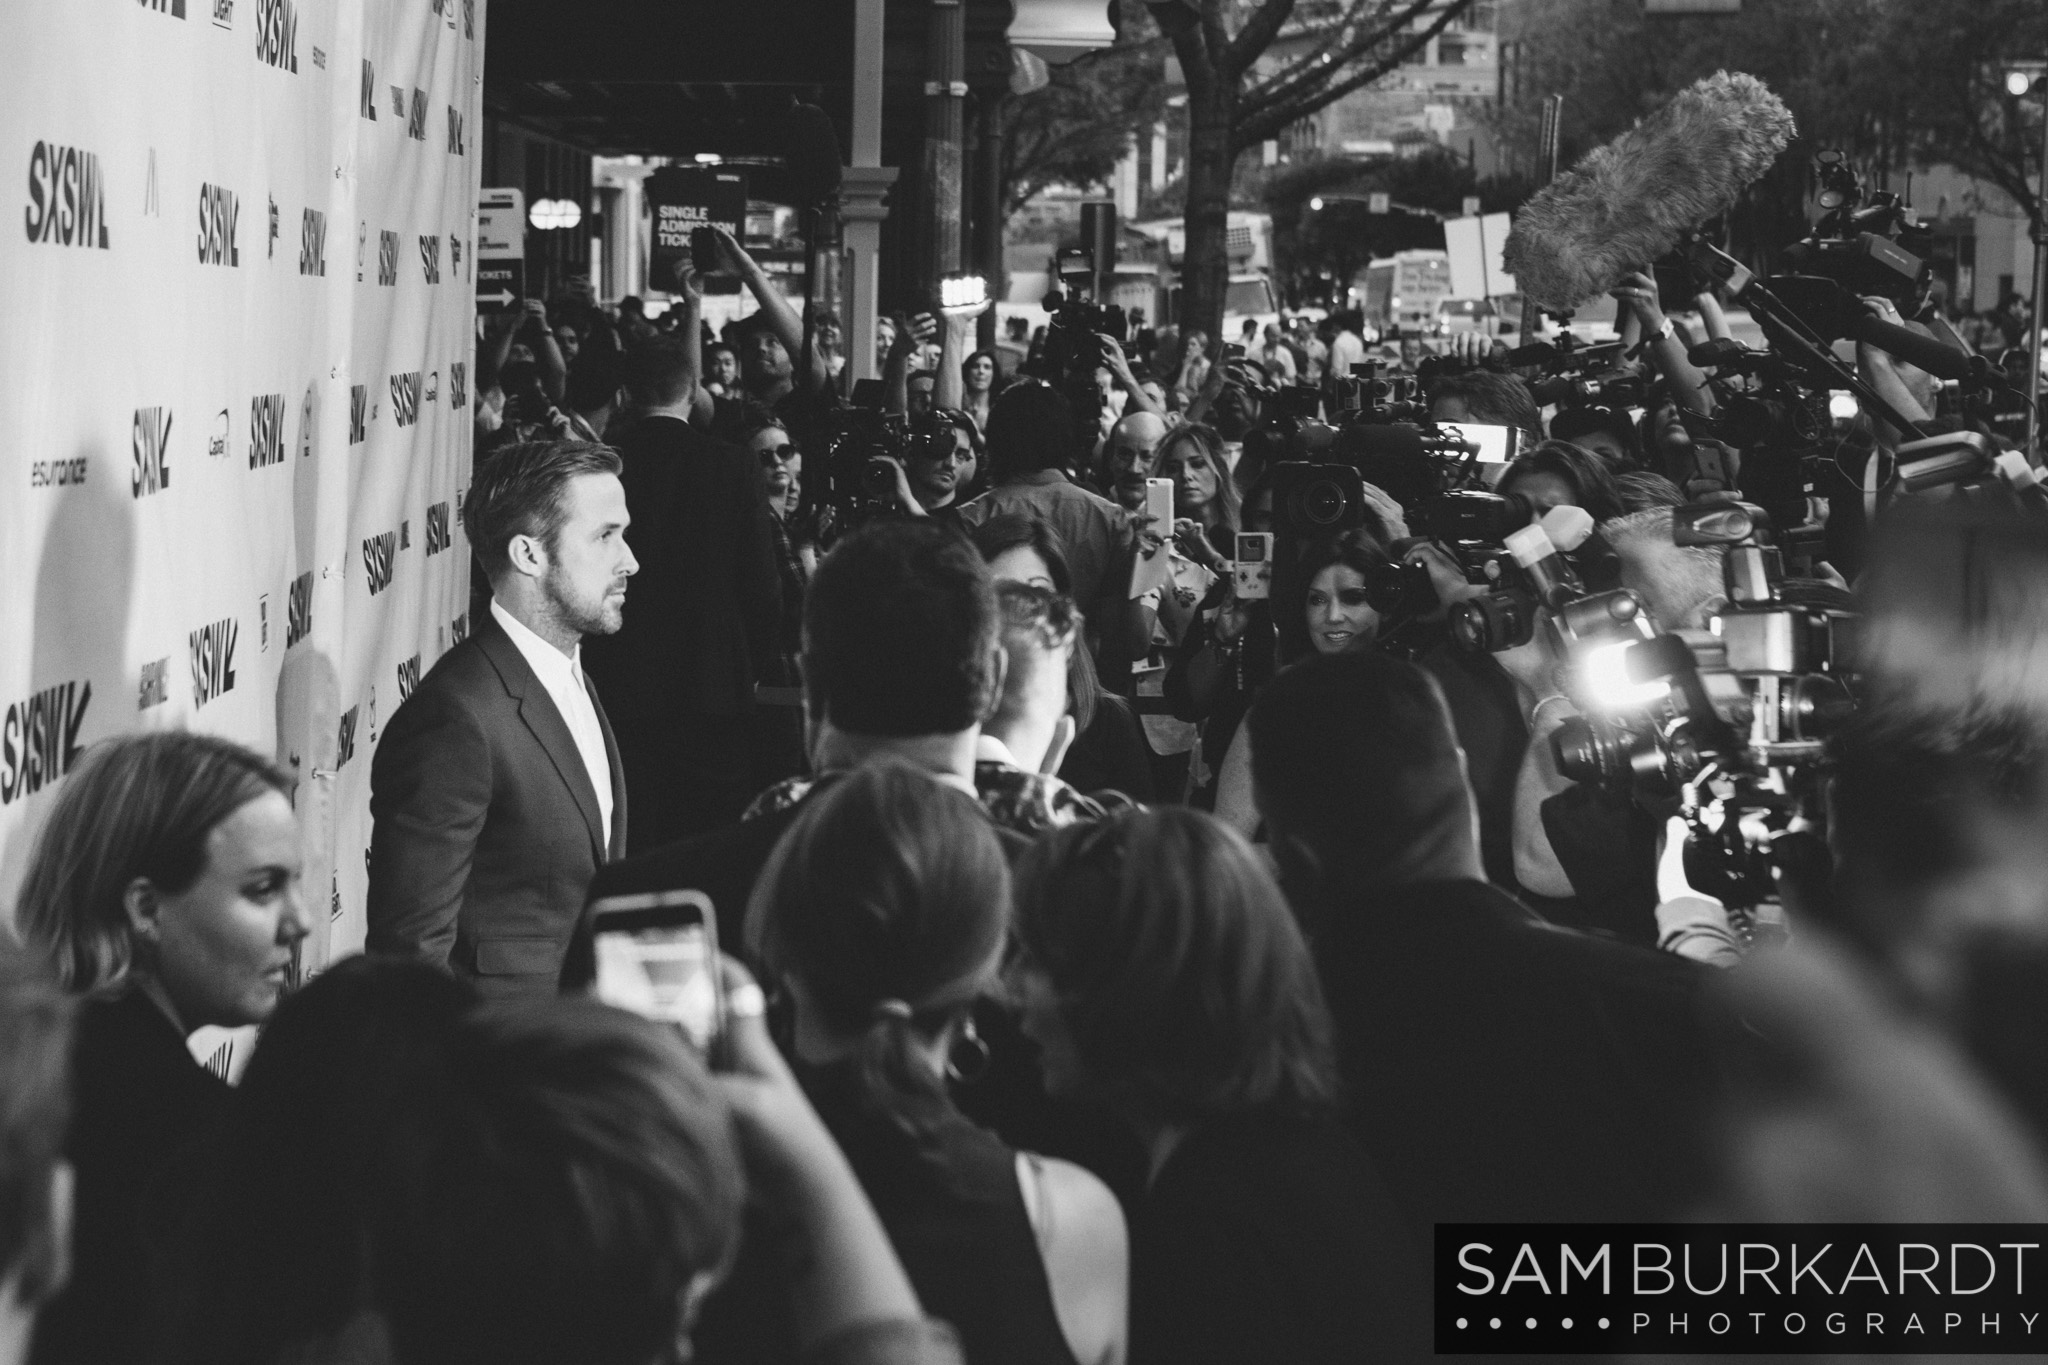 Ryan Gosling - Song to Song premiere at SXSW